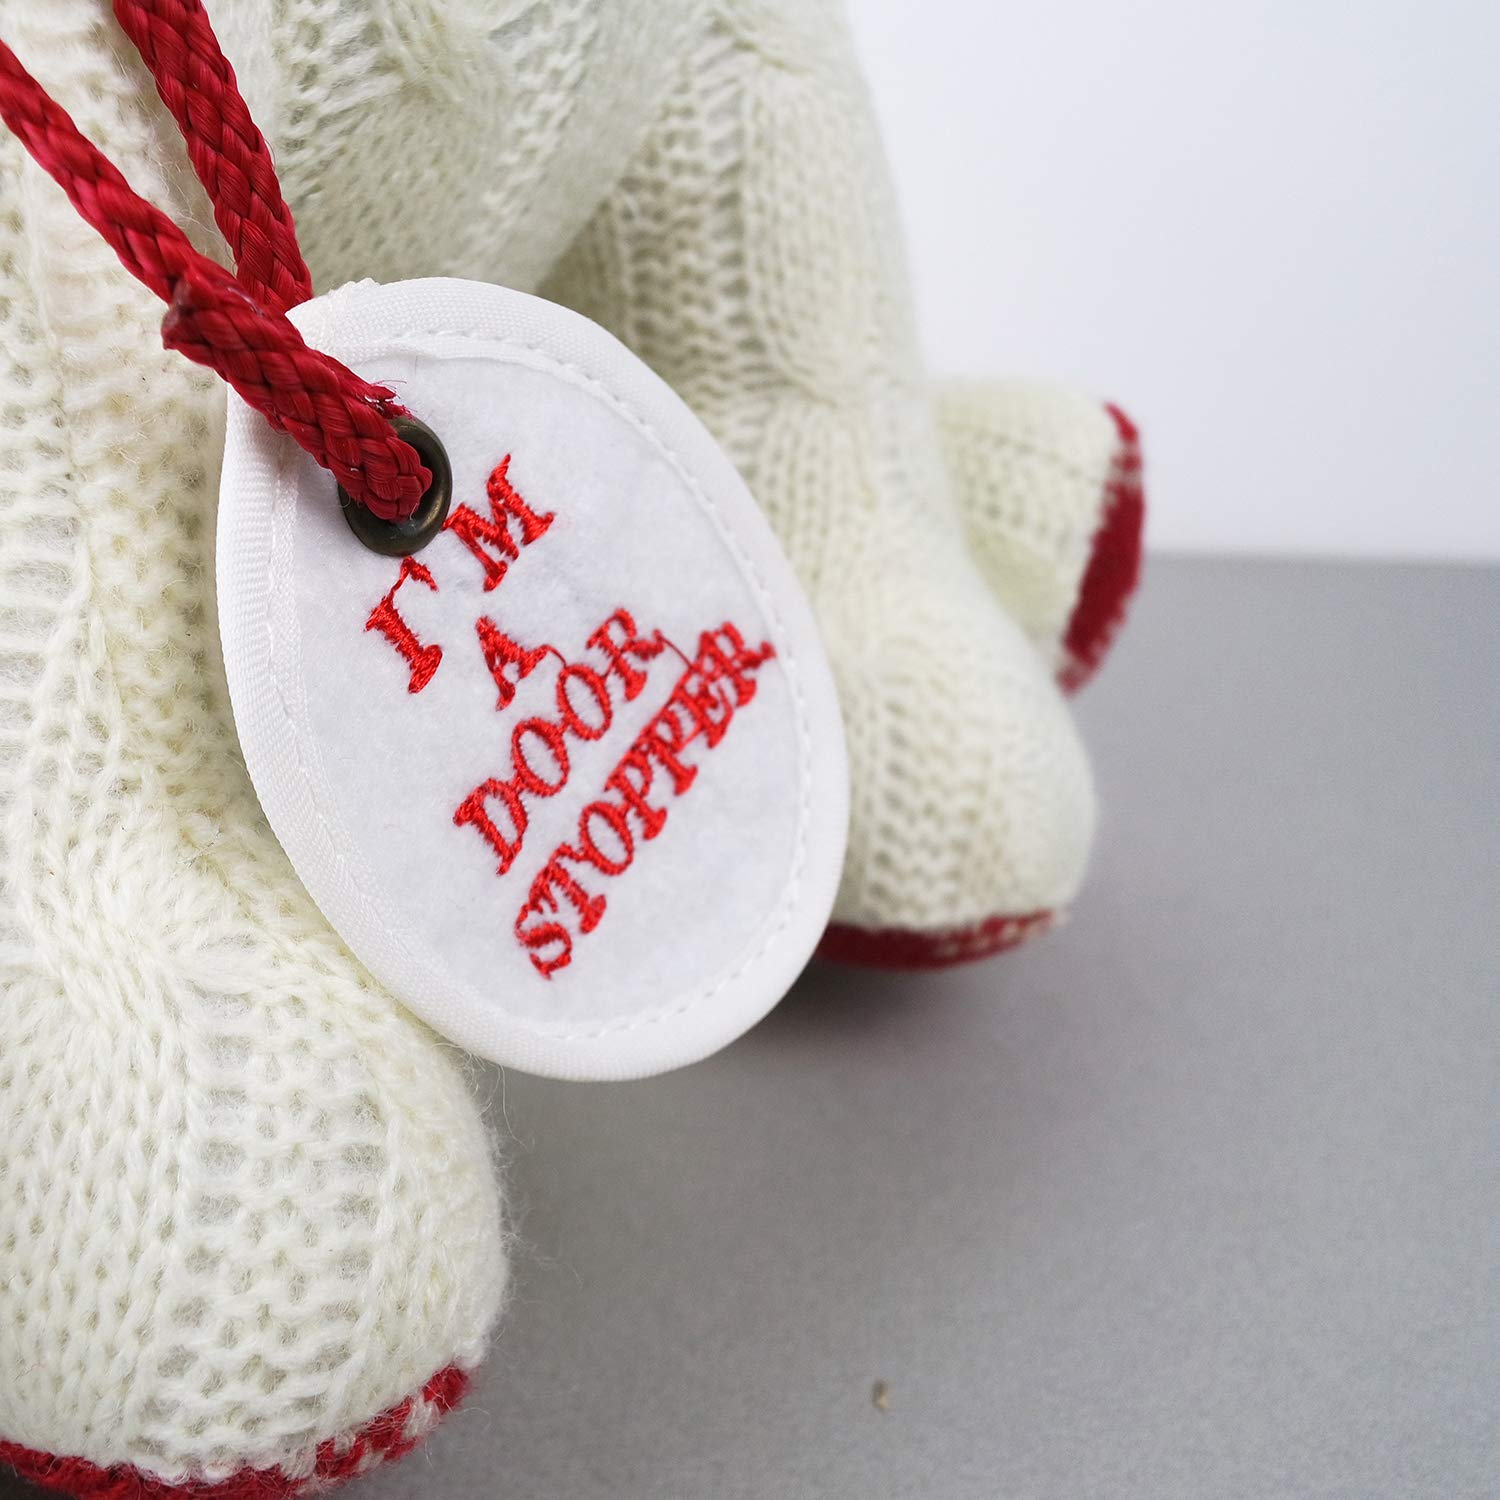 Stuffed Animal White Dog Door Stopper 1.73lb Home Decor Cable Knit Pattern by dwelling (Image #7)